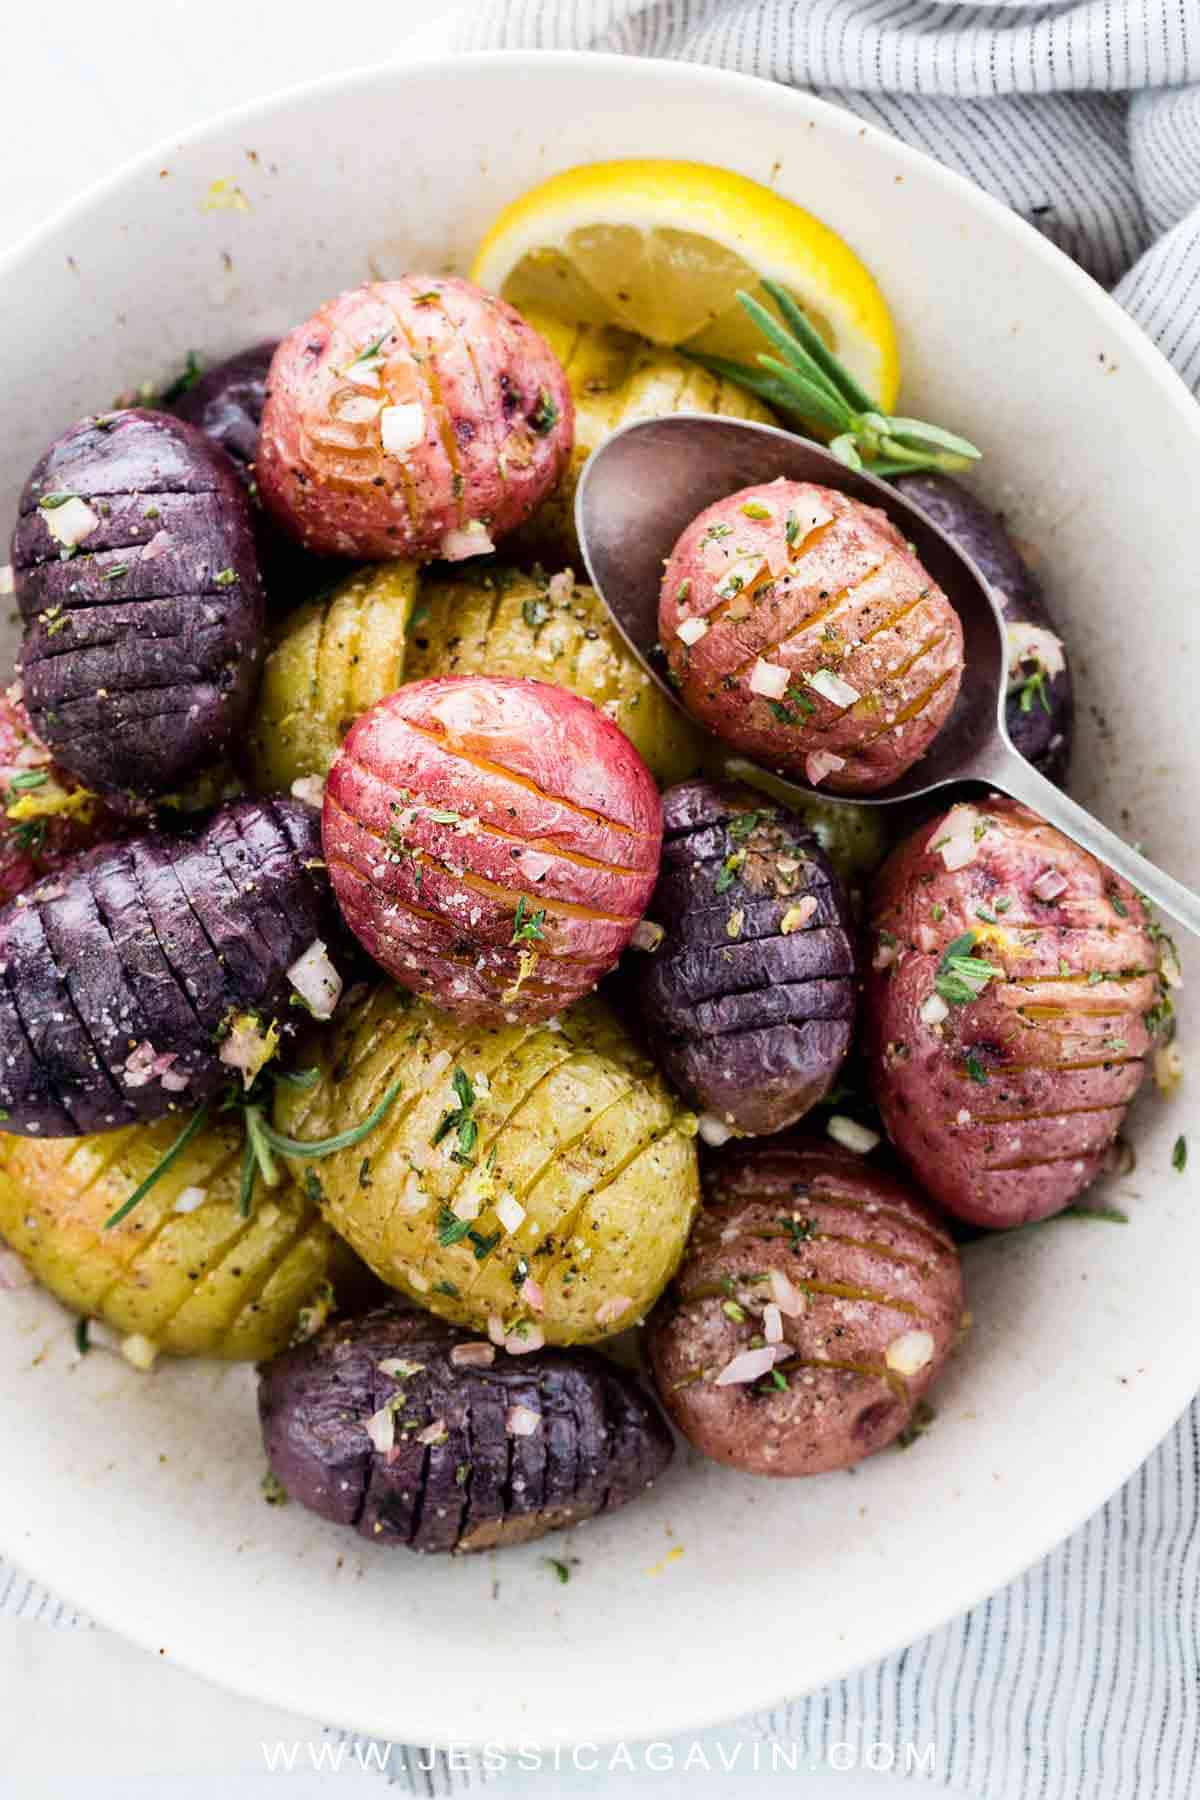 Hasselback potatoes roasted until crisp and topped with a tangy lemon garlic sauce. A flavorful and wholesome side dish bursting with fresh herbs and seasonings. #sidedish #potatoes #hasselback #vegan #whole30